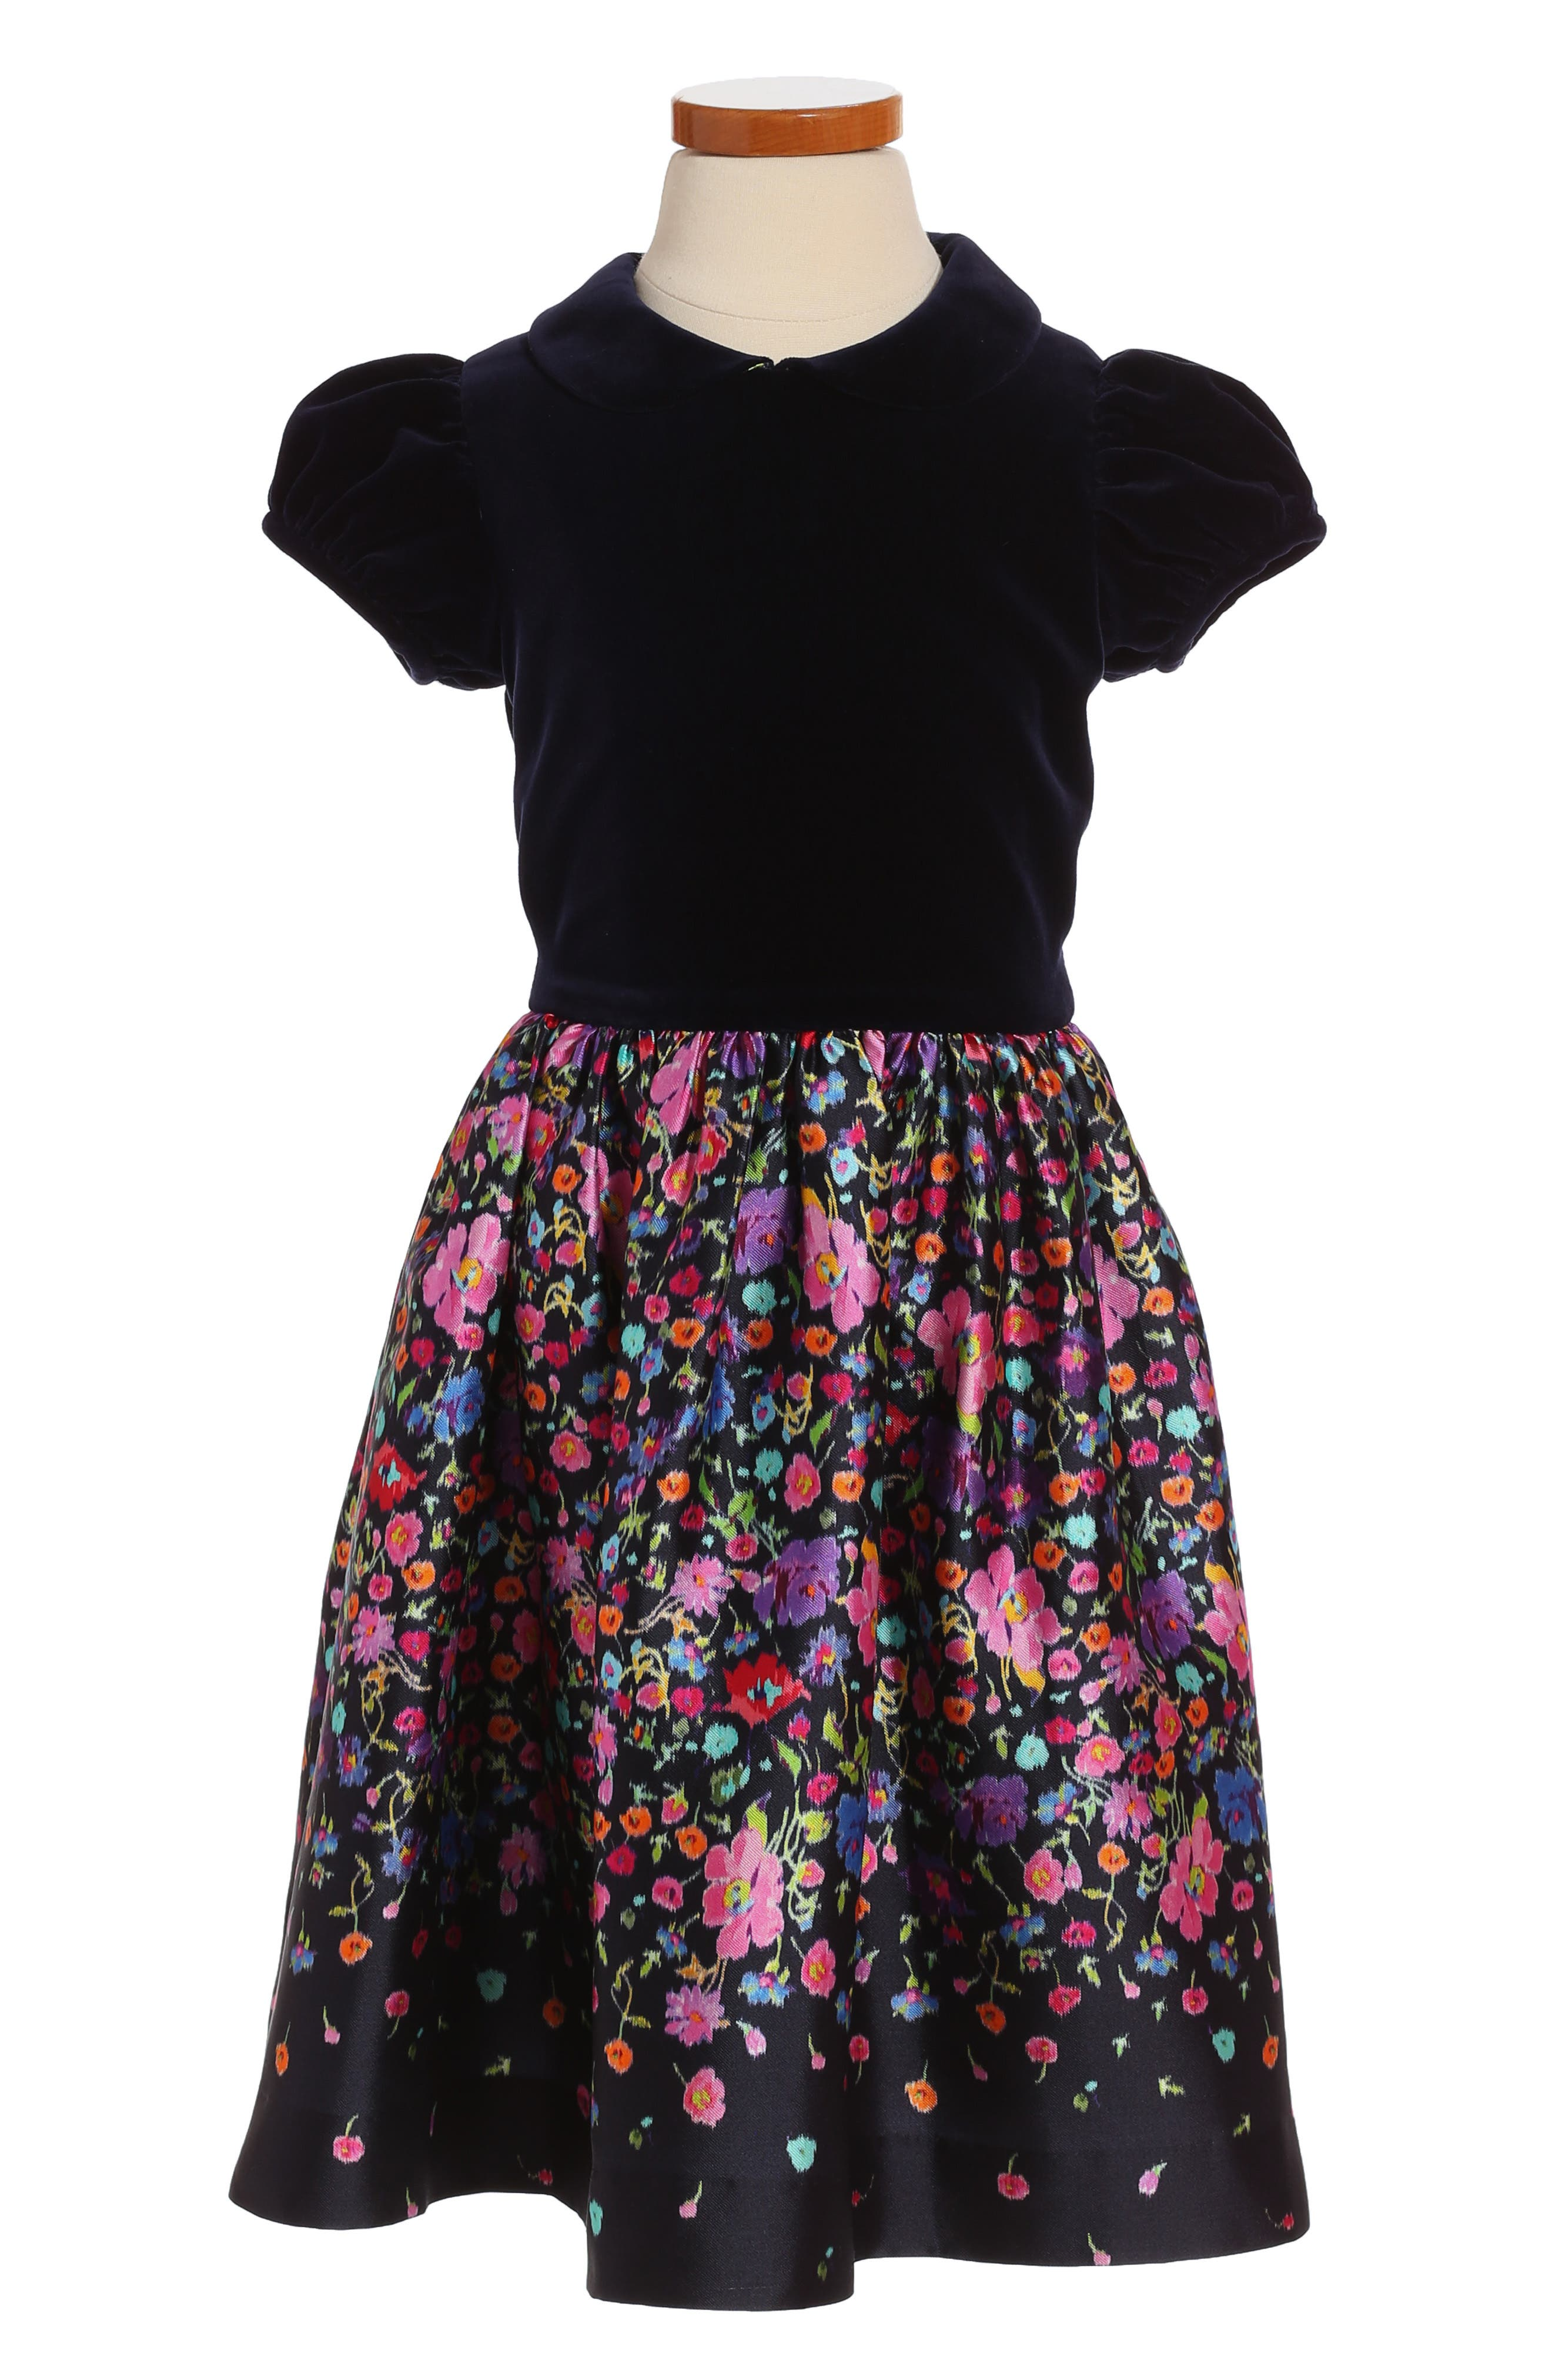 Main Image - Oscar de la Renta Chine Garden Mikado Party Dress (Toddler Girls & Little Girls)